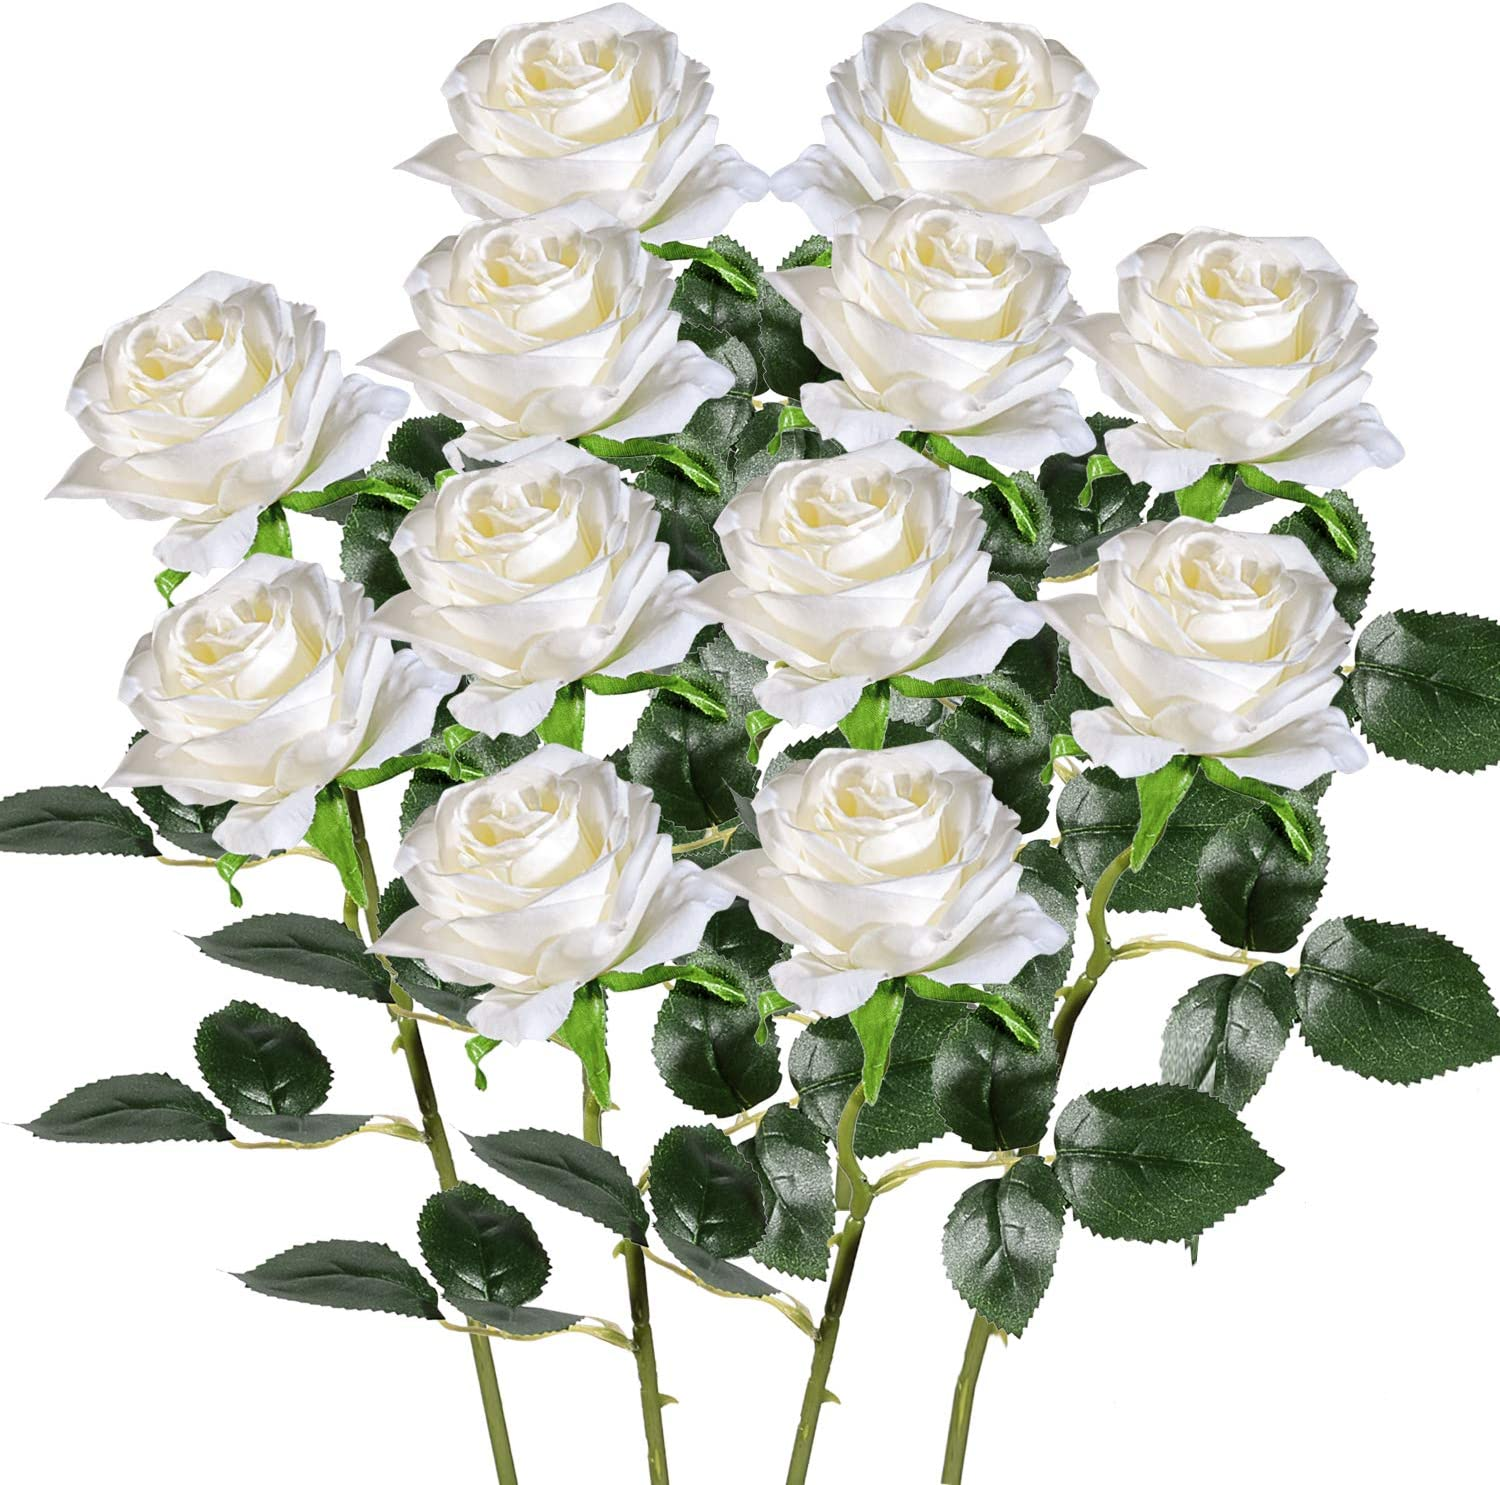 Artificial Fake Roses with Long Stem, IGIYI 12 Pack Milky White Flowers Silk Rose for DIY Wedding Home Decorations Bouquet